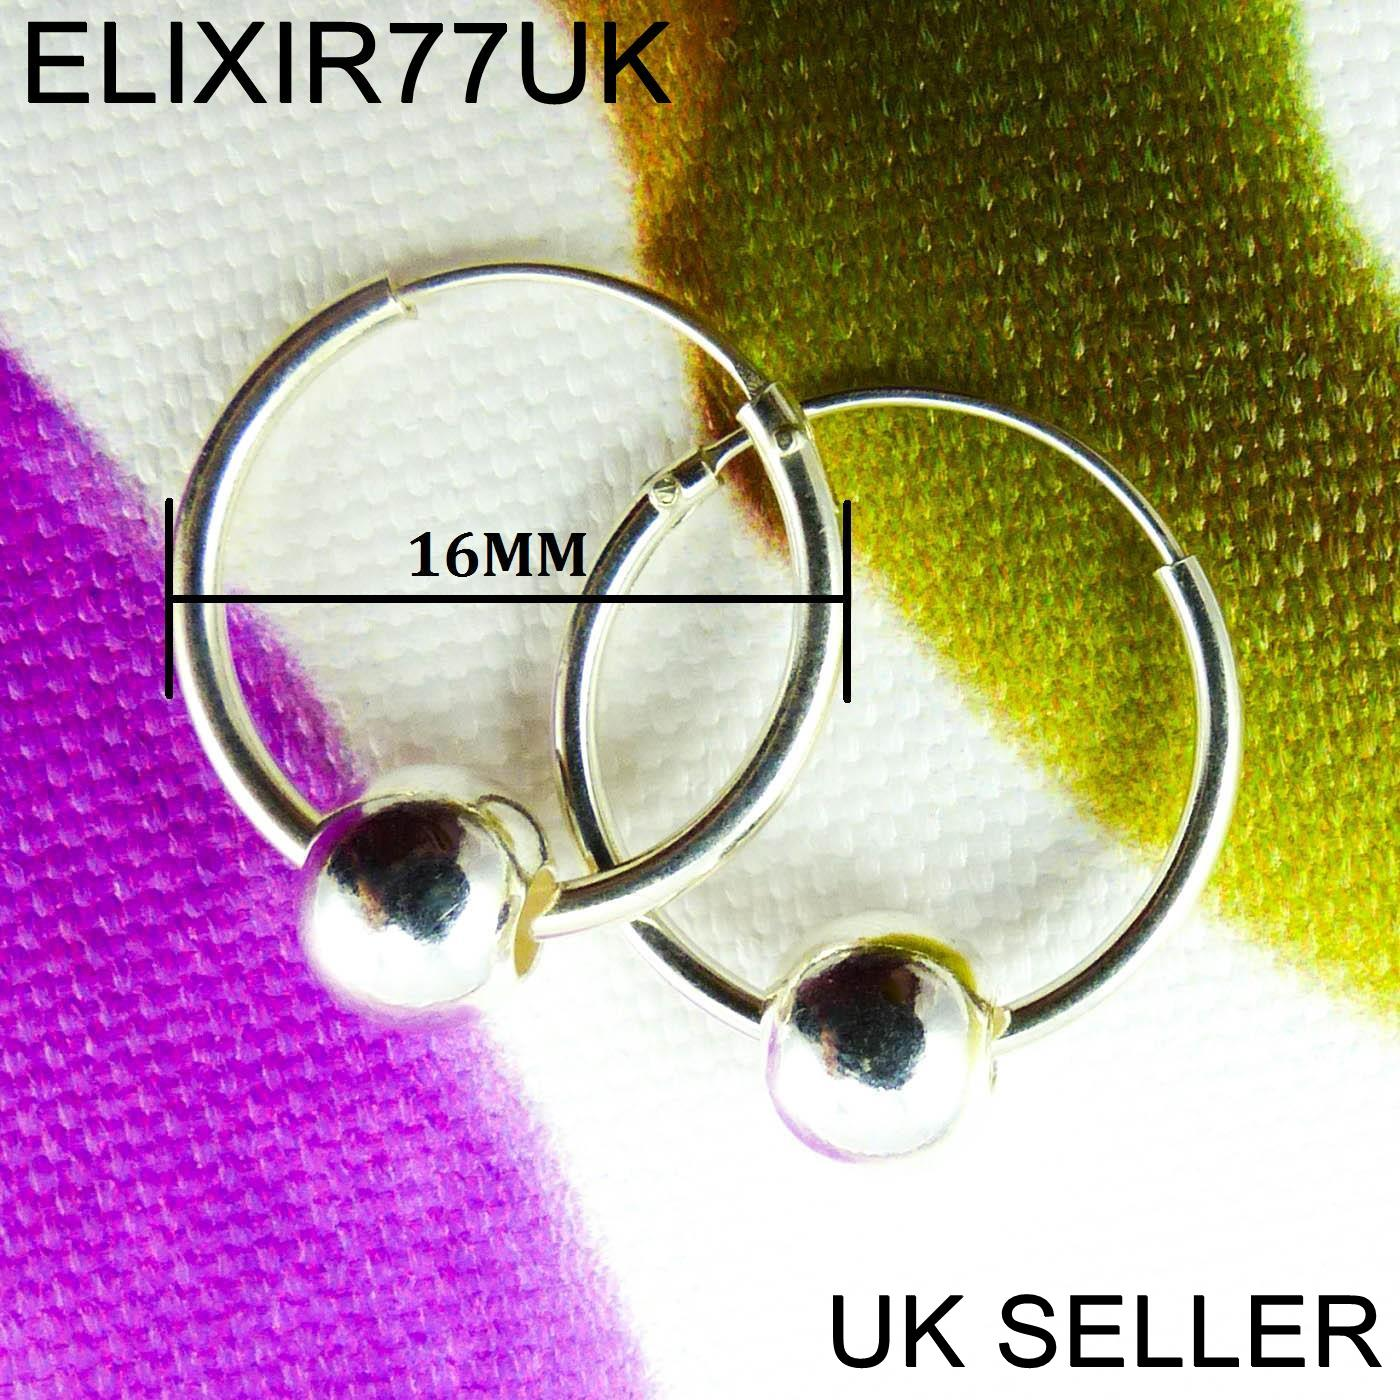 NEW-STERLING-SILVER-HOOPS-EARRINGS-SMALL-LARGE-BALL-SET-SOLID-STUD-WOMENS-LADIES